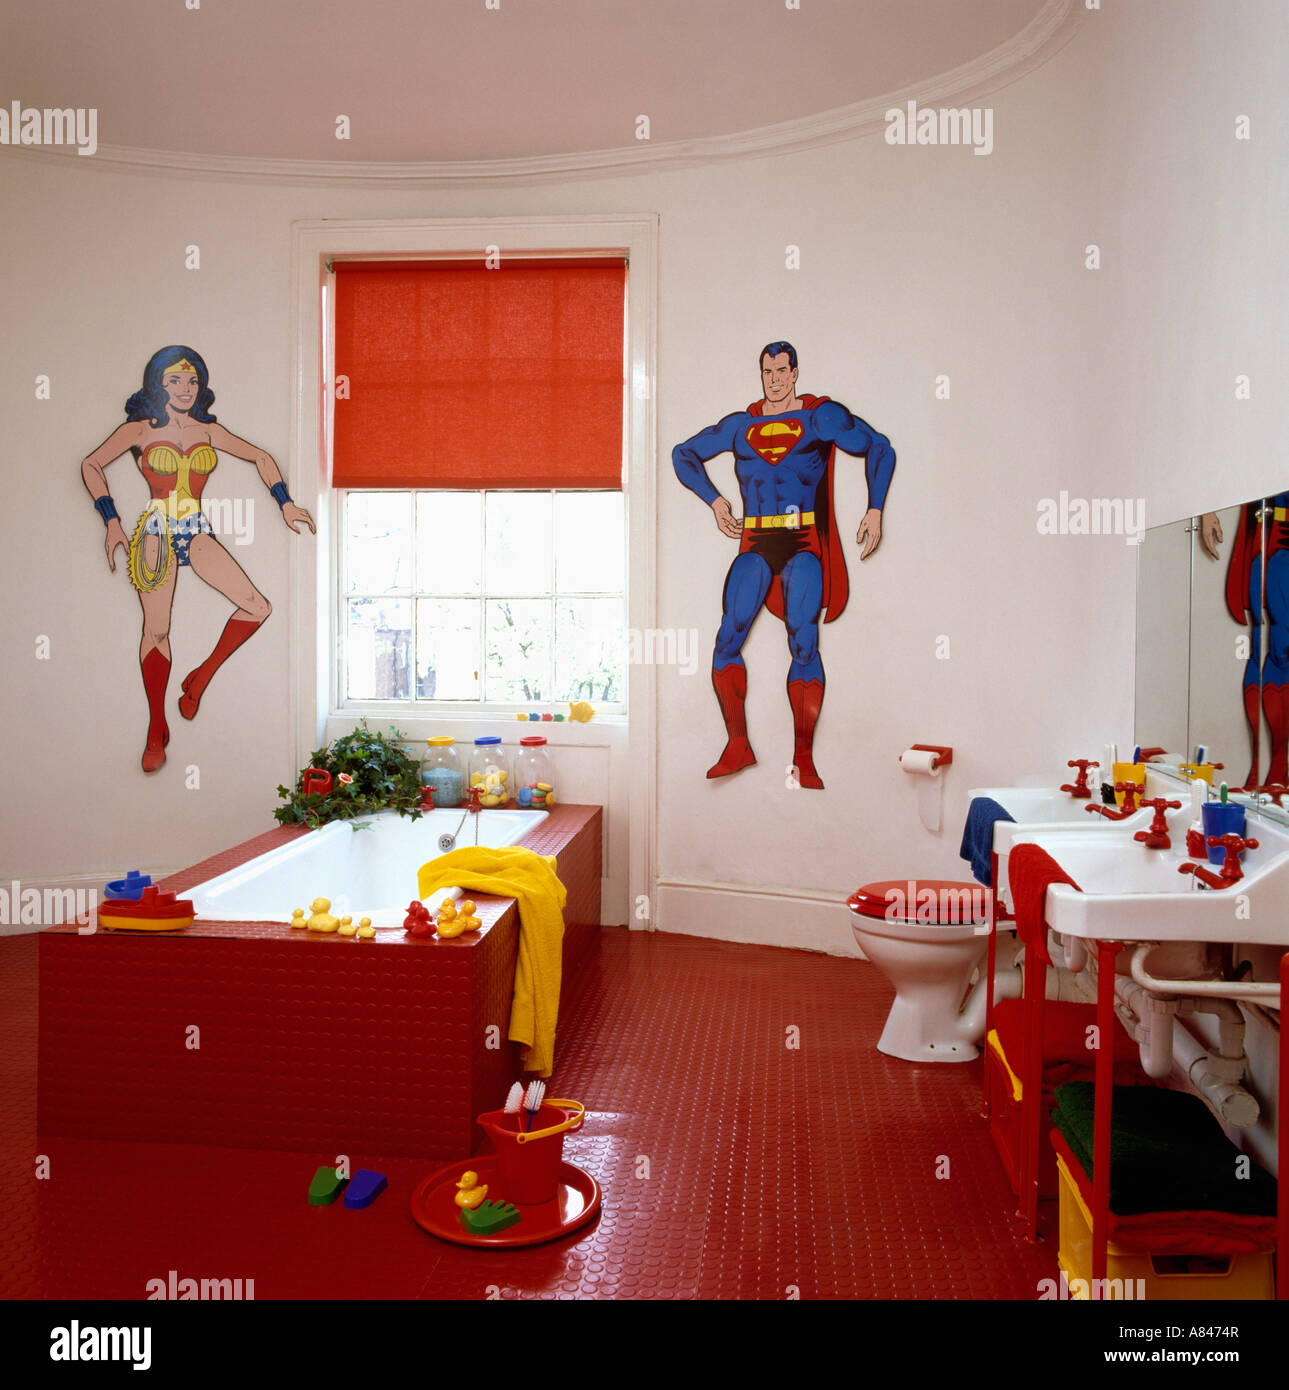 Rubber Bathroom Floor Superman And Superwoman Murals On Wall Of Childrens Bathroom With